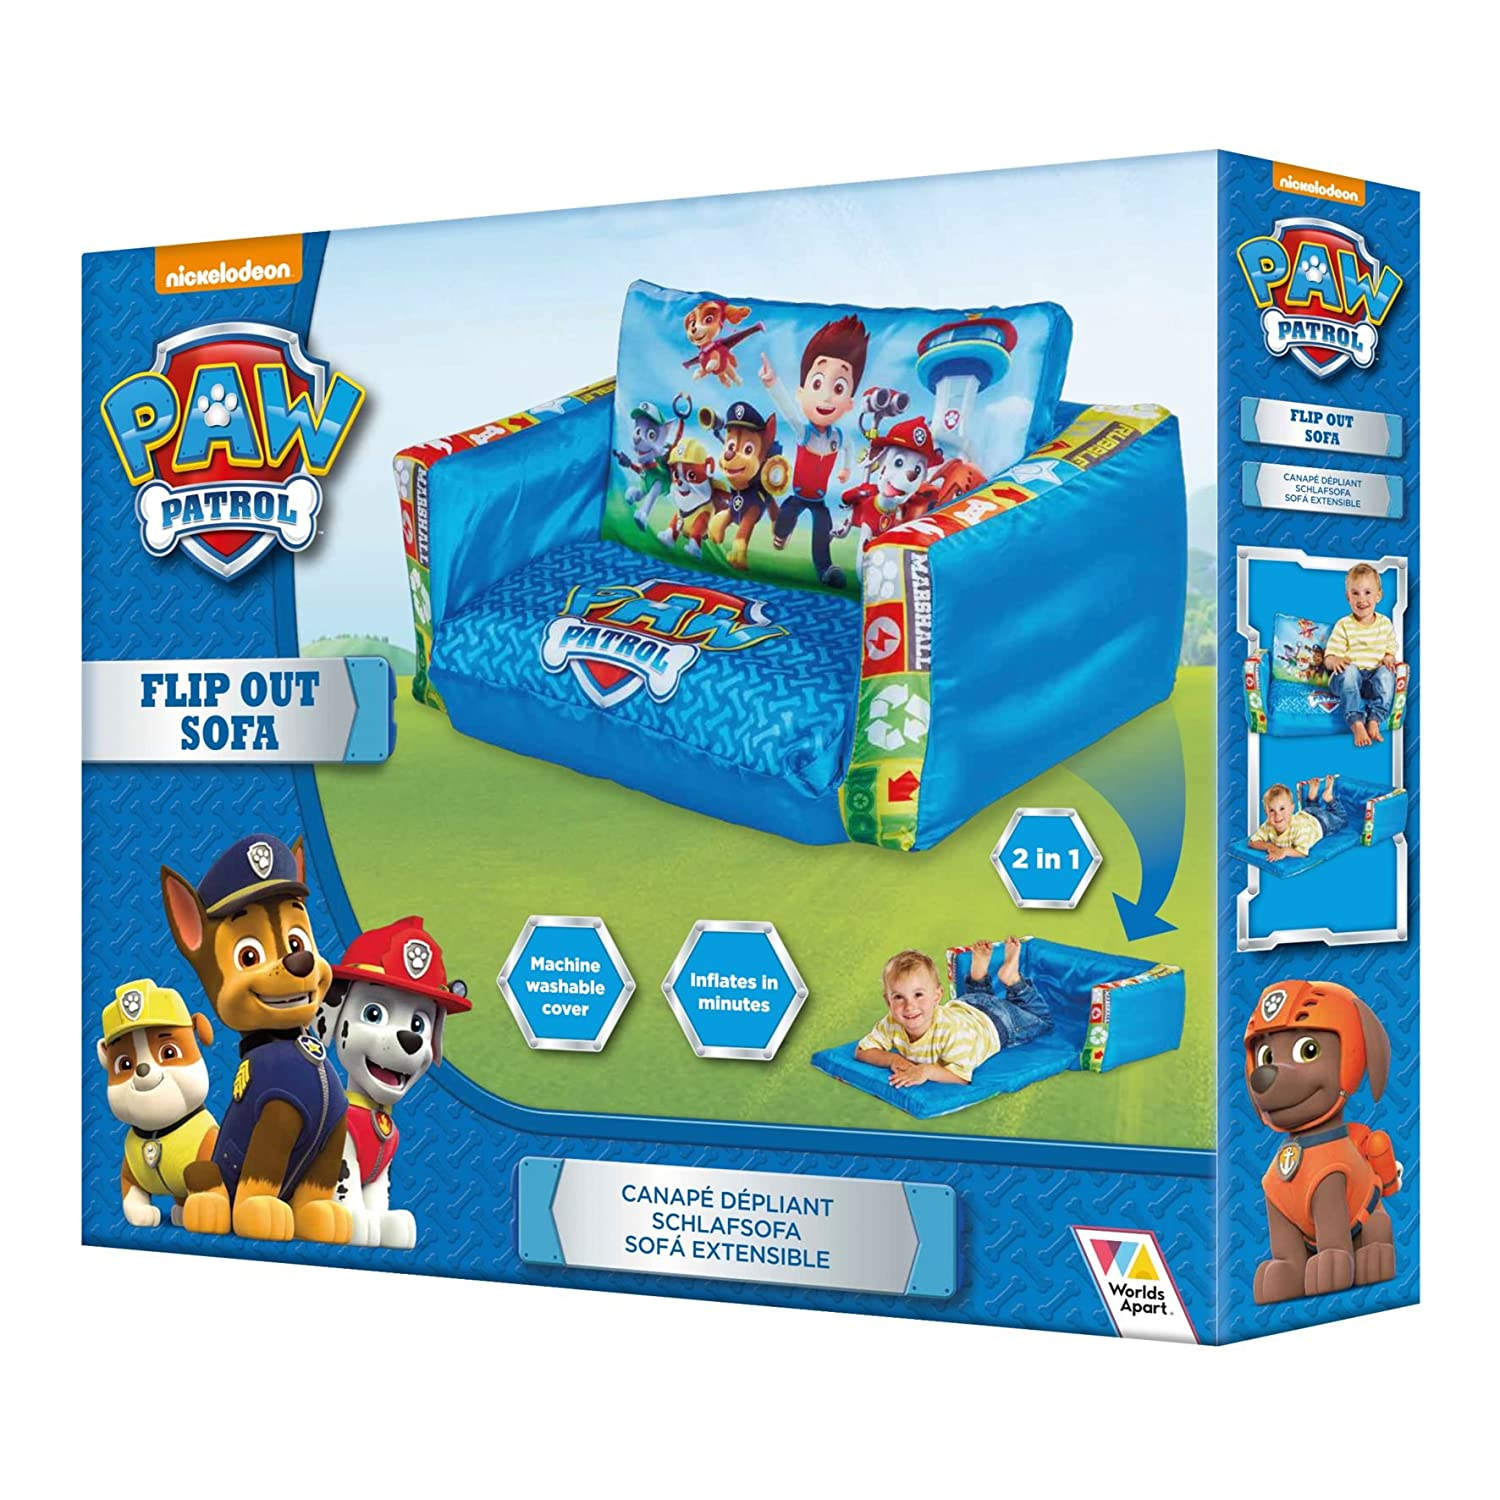 Paw Patrol 2 in 1 Inflatable Flip Out Mini Sofa and Lounger Paw